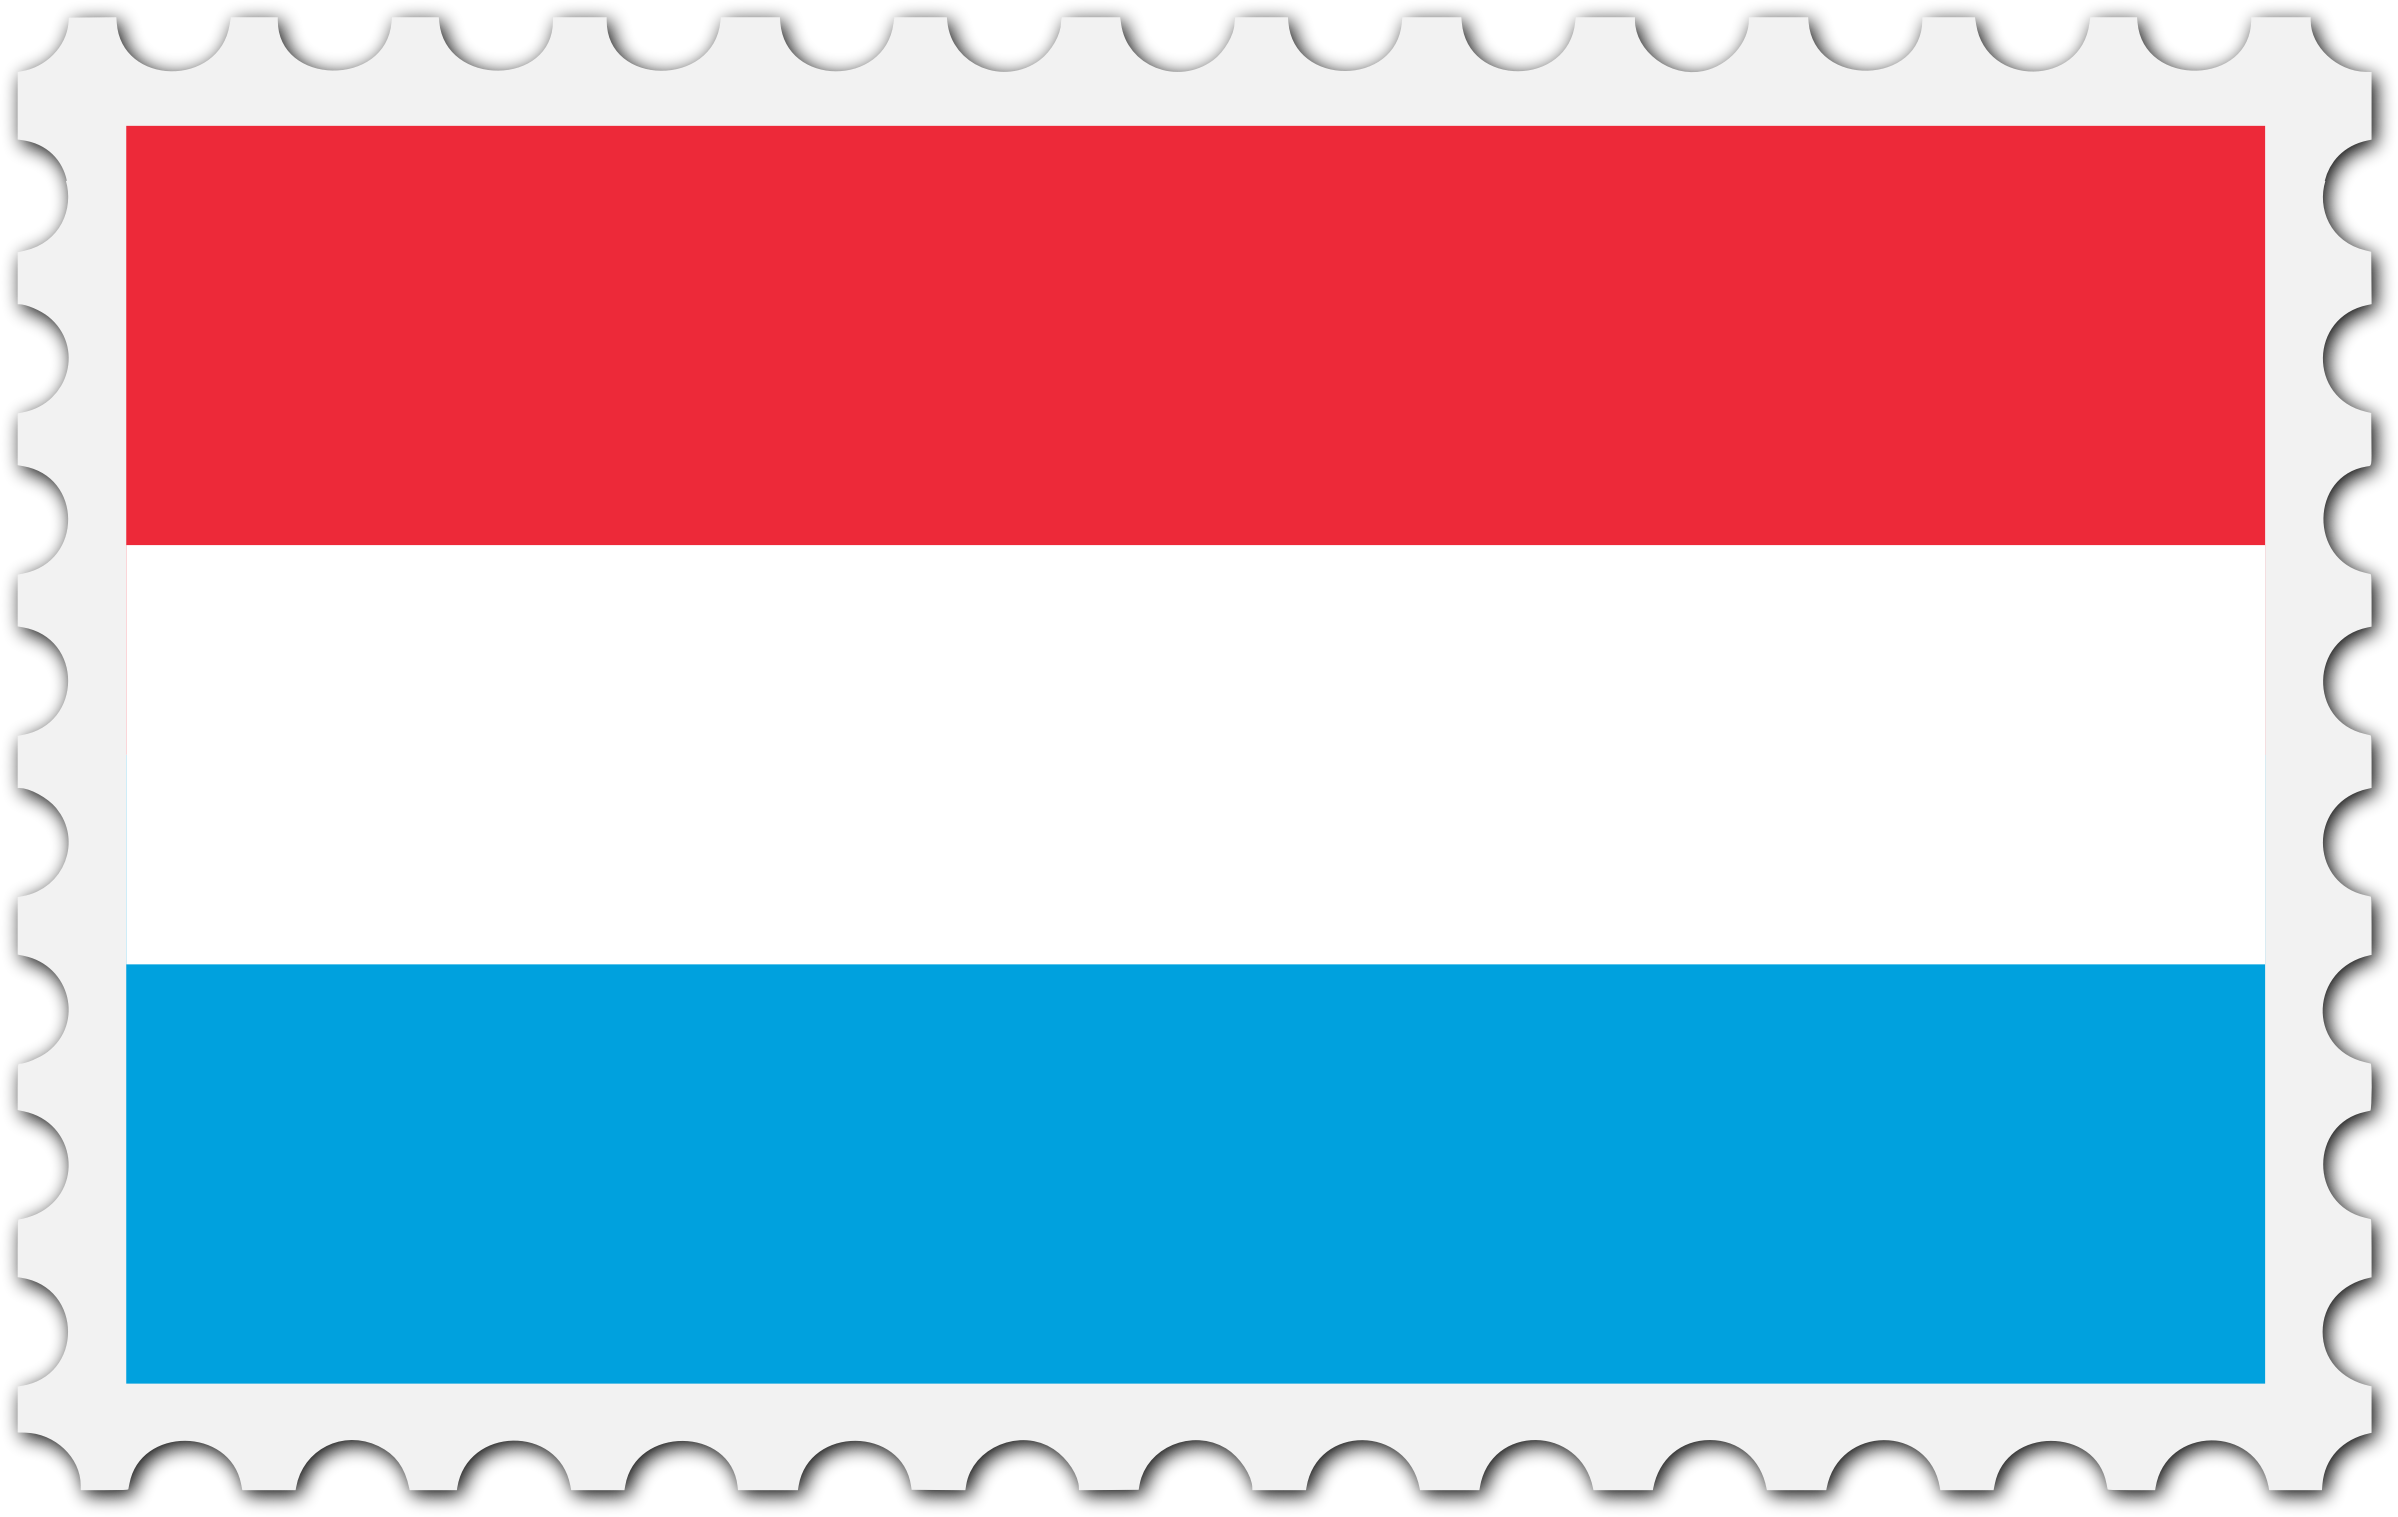 Luxembourg flag stamp by Firkin